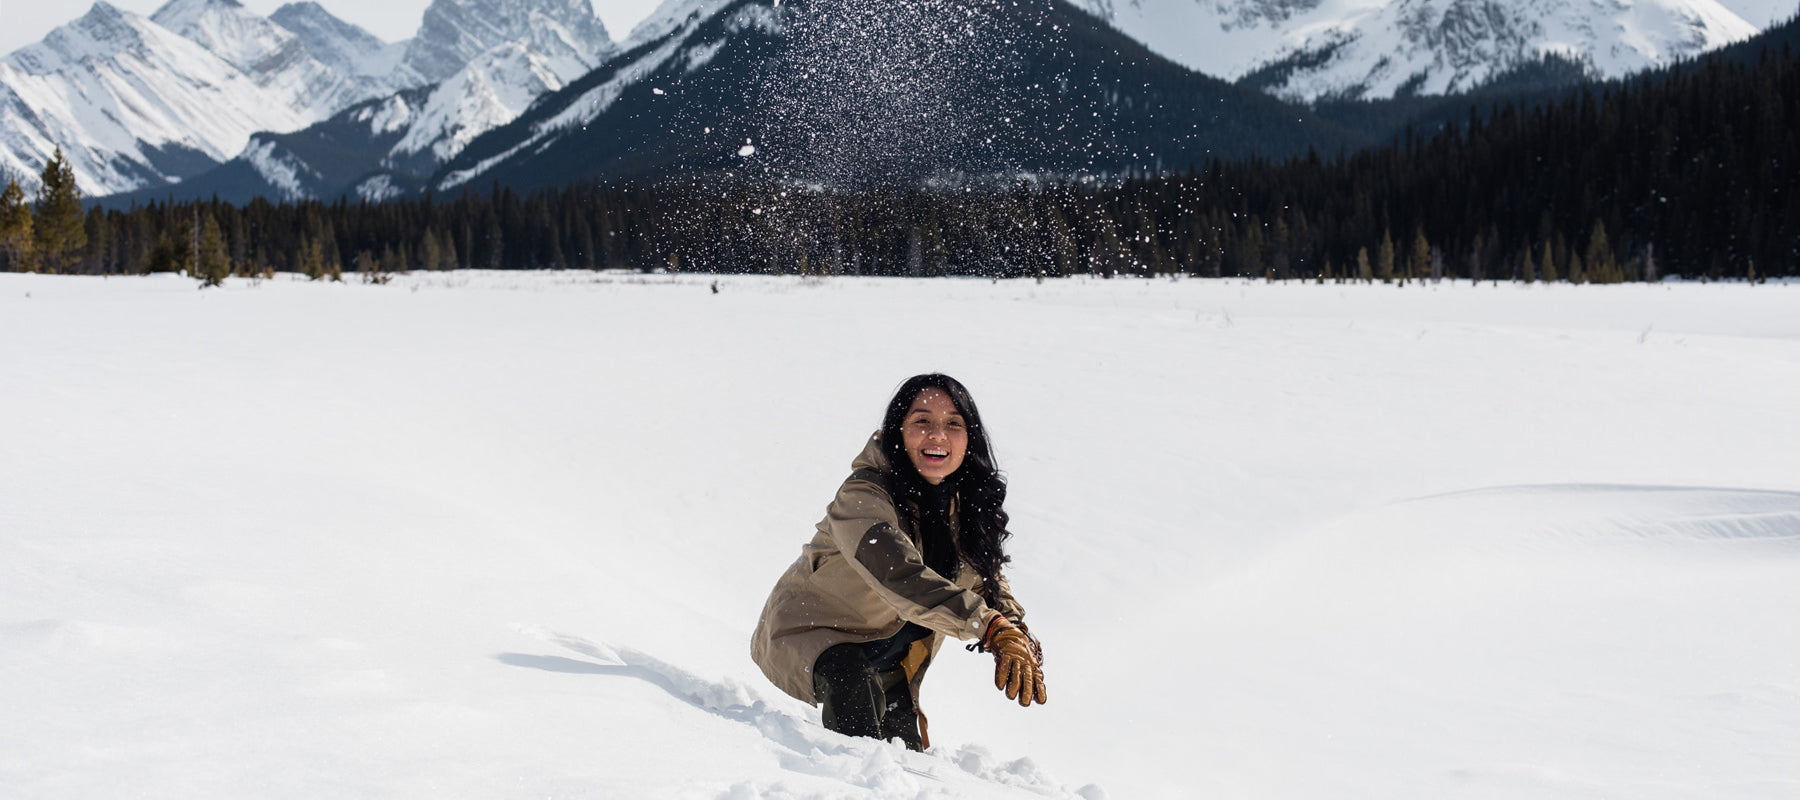 Woman throwing snowball with mountains in the background.